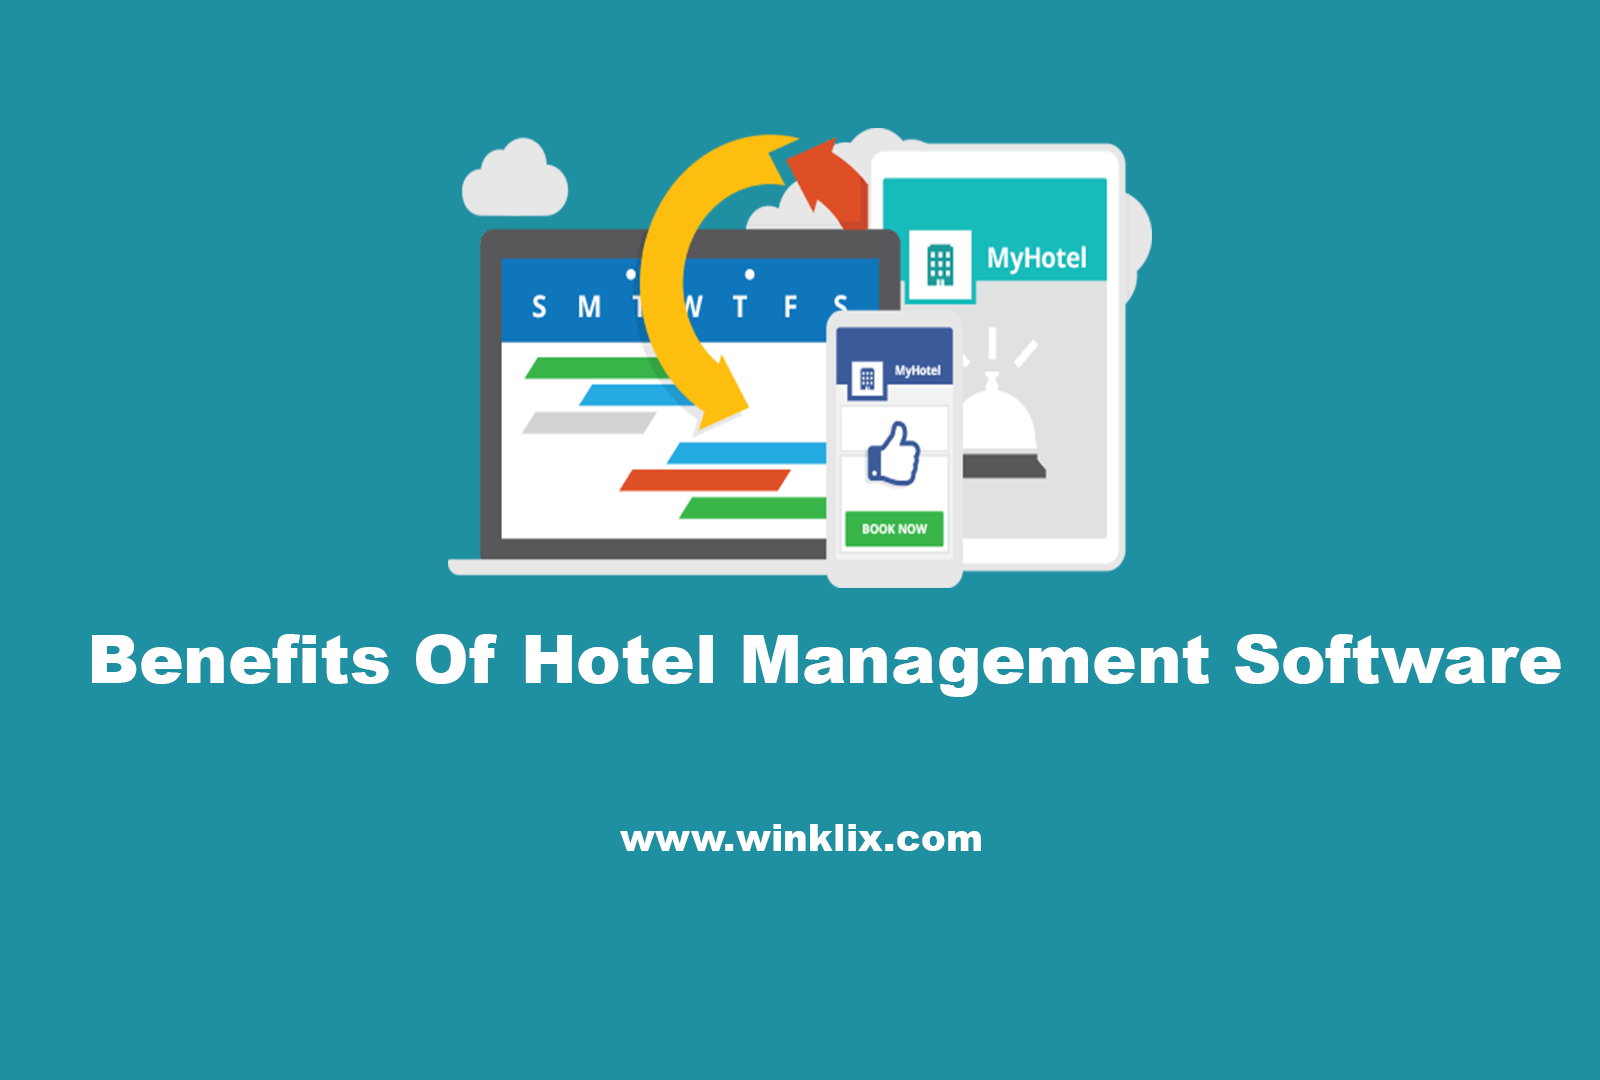 hotel-management-software-benefits